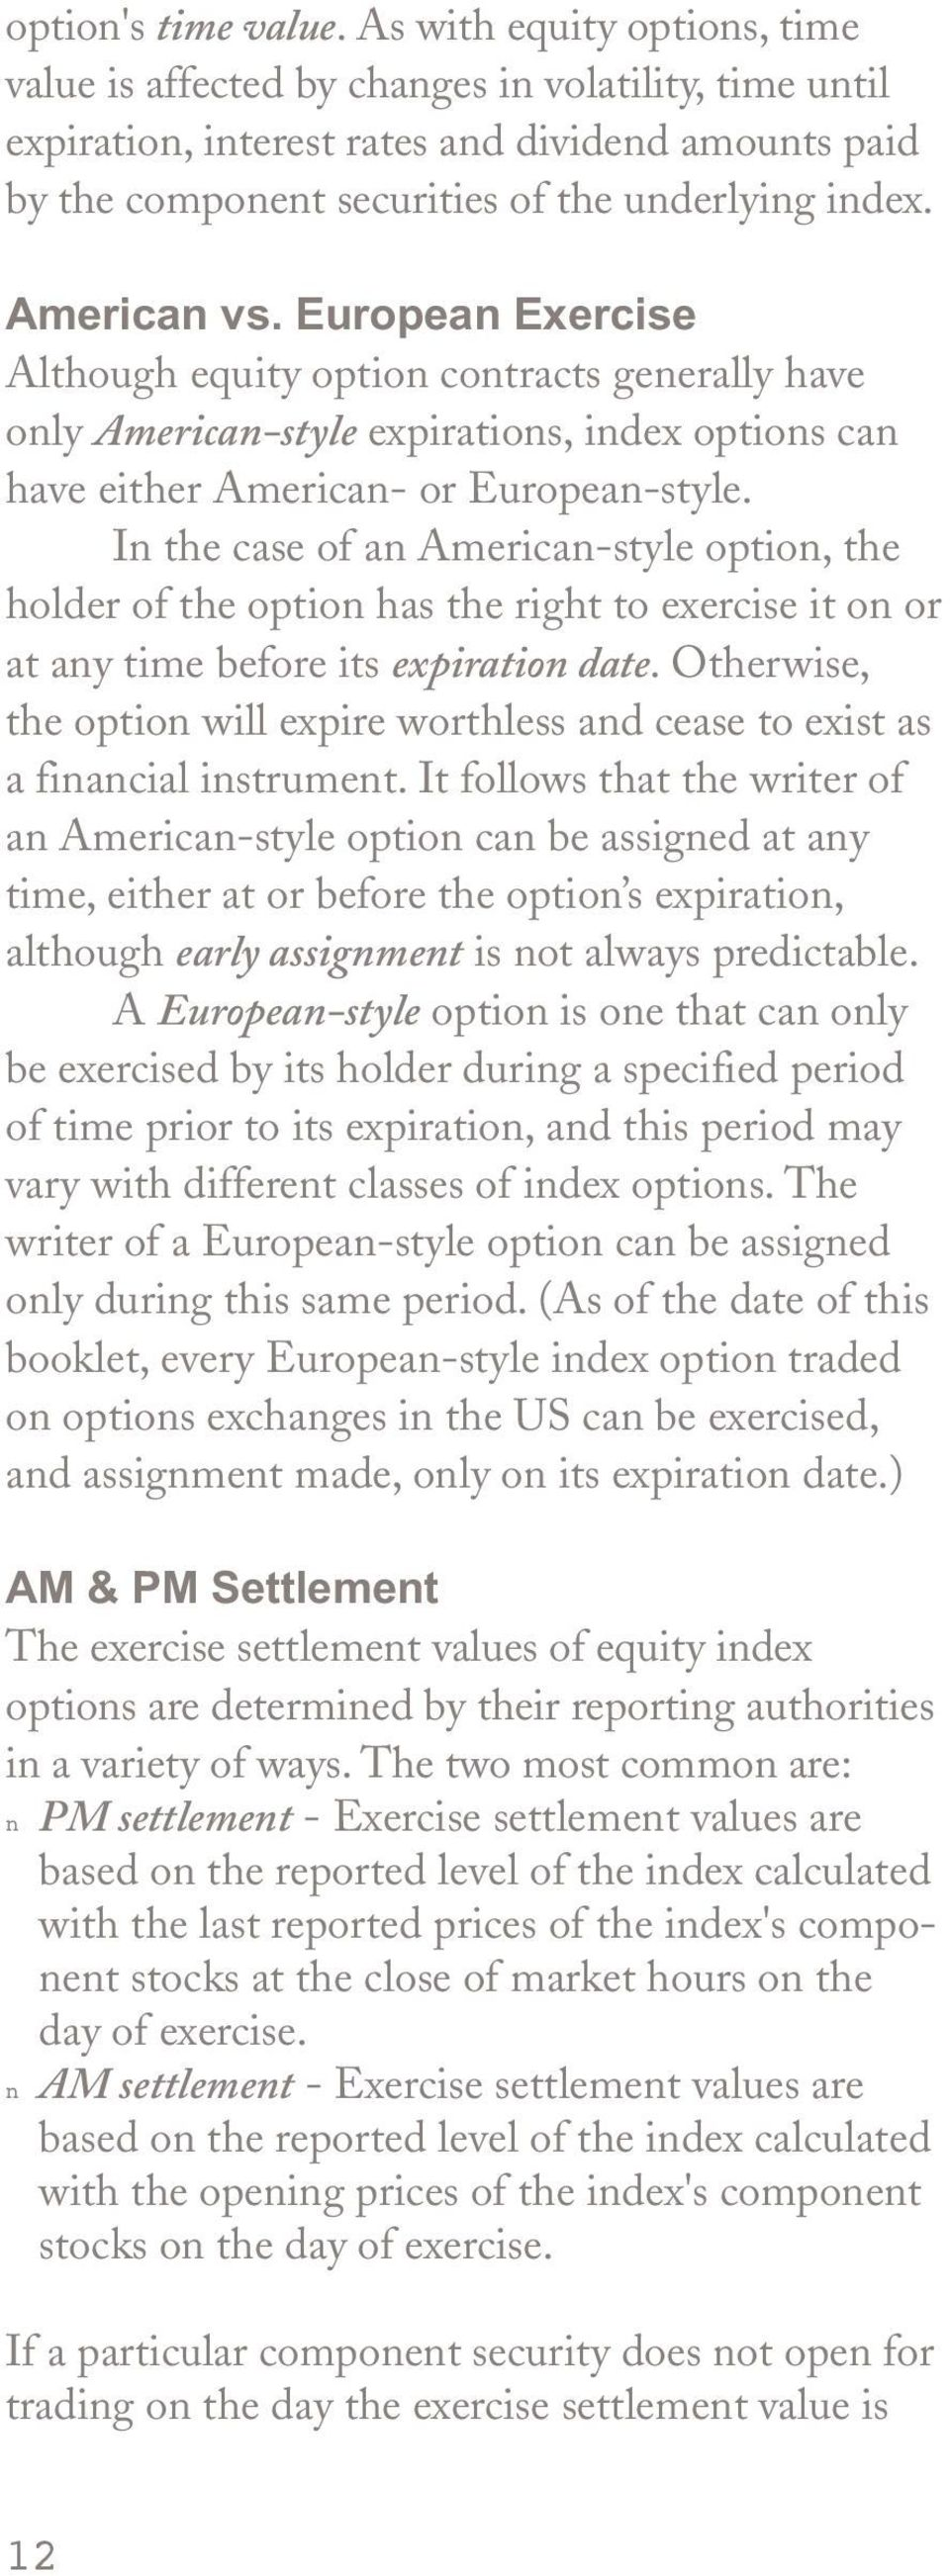 American vs. European Exercise Although equity option contracts generally have only American-style expirations, index options can have either American- or European-style.